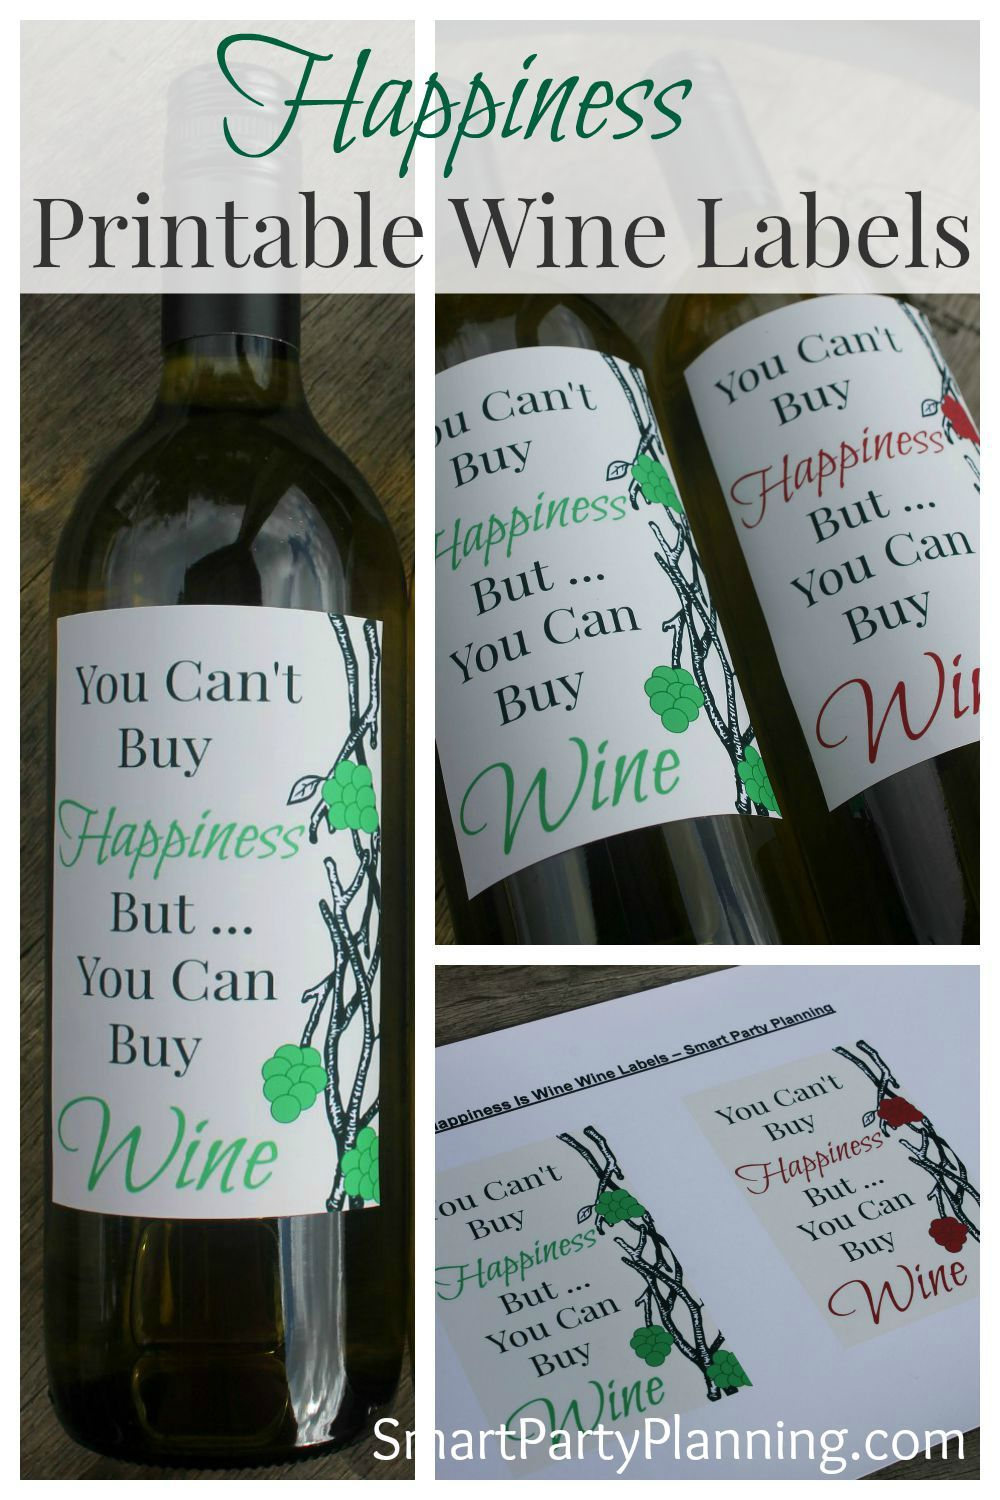 Wine label printable happiness is happiness wine and bottle